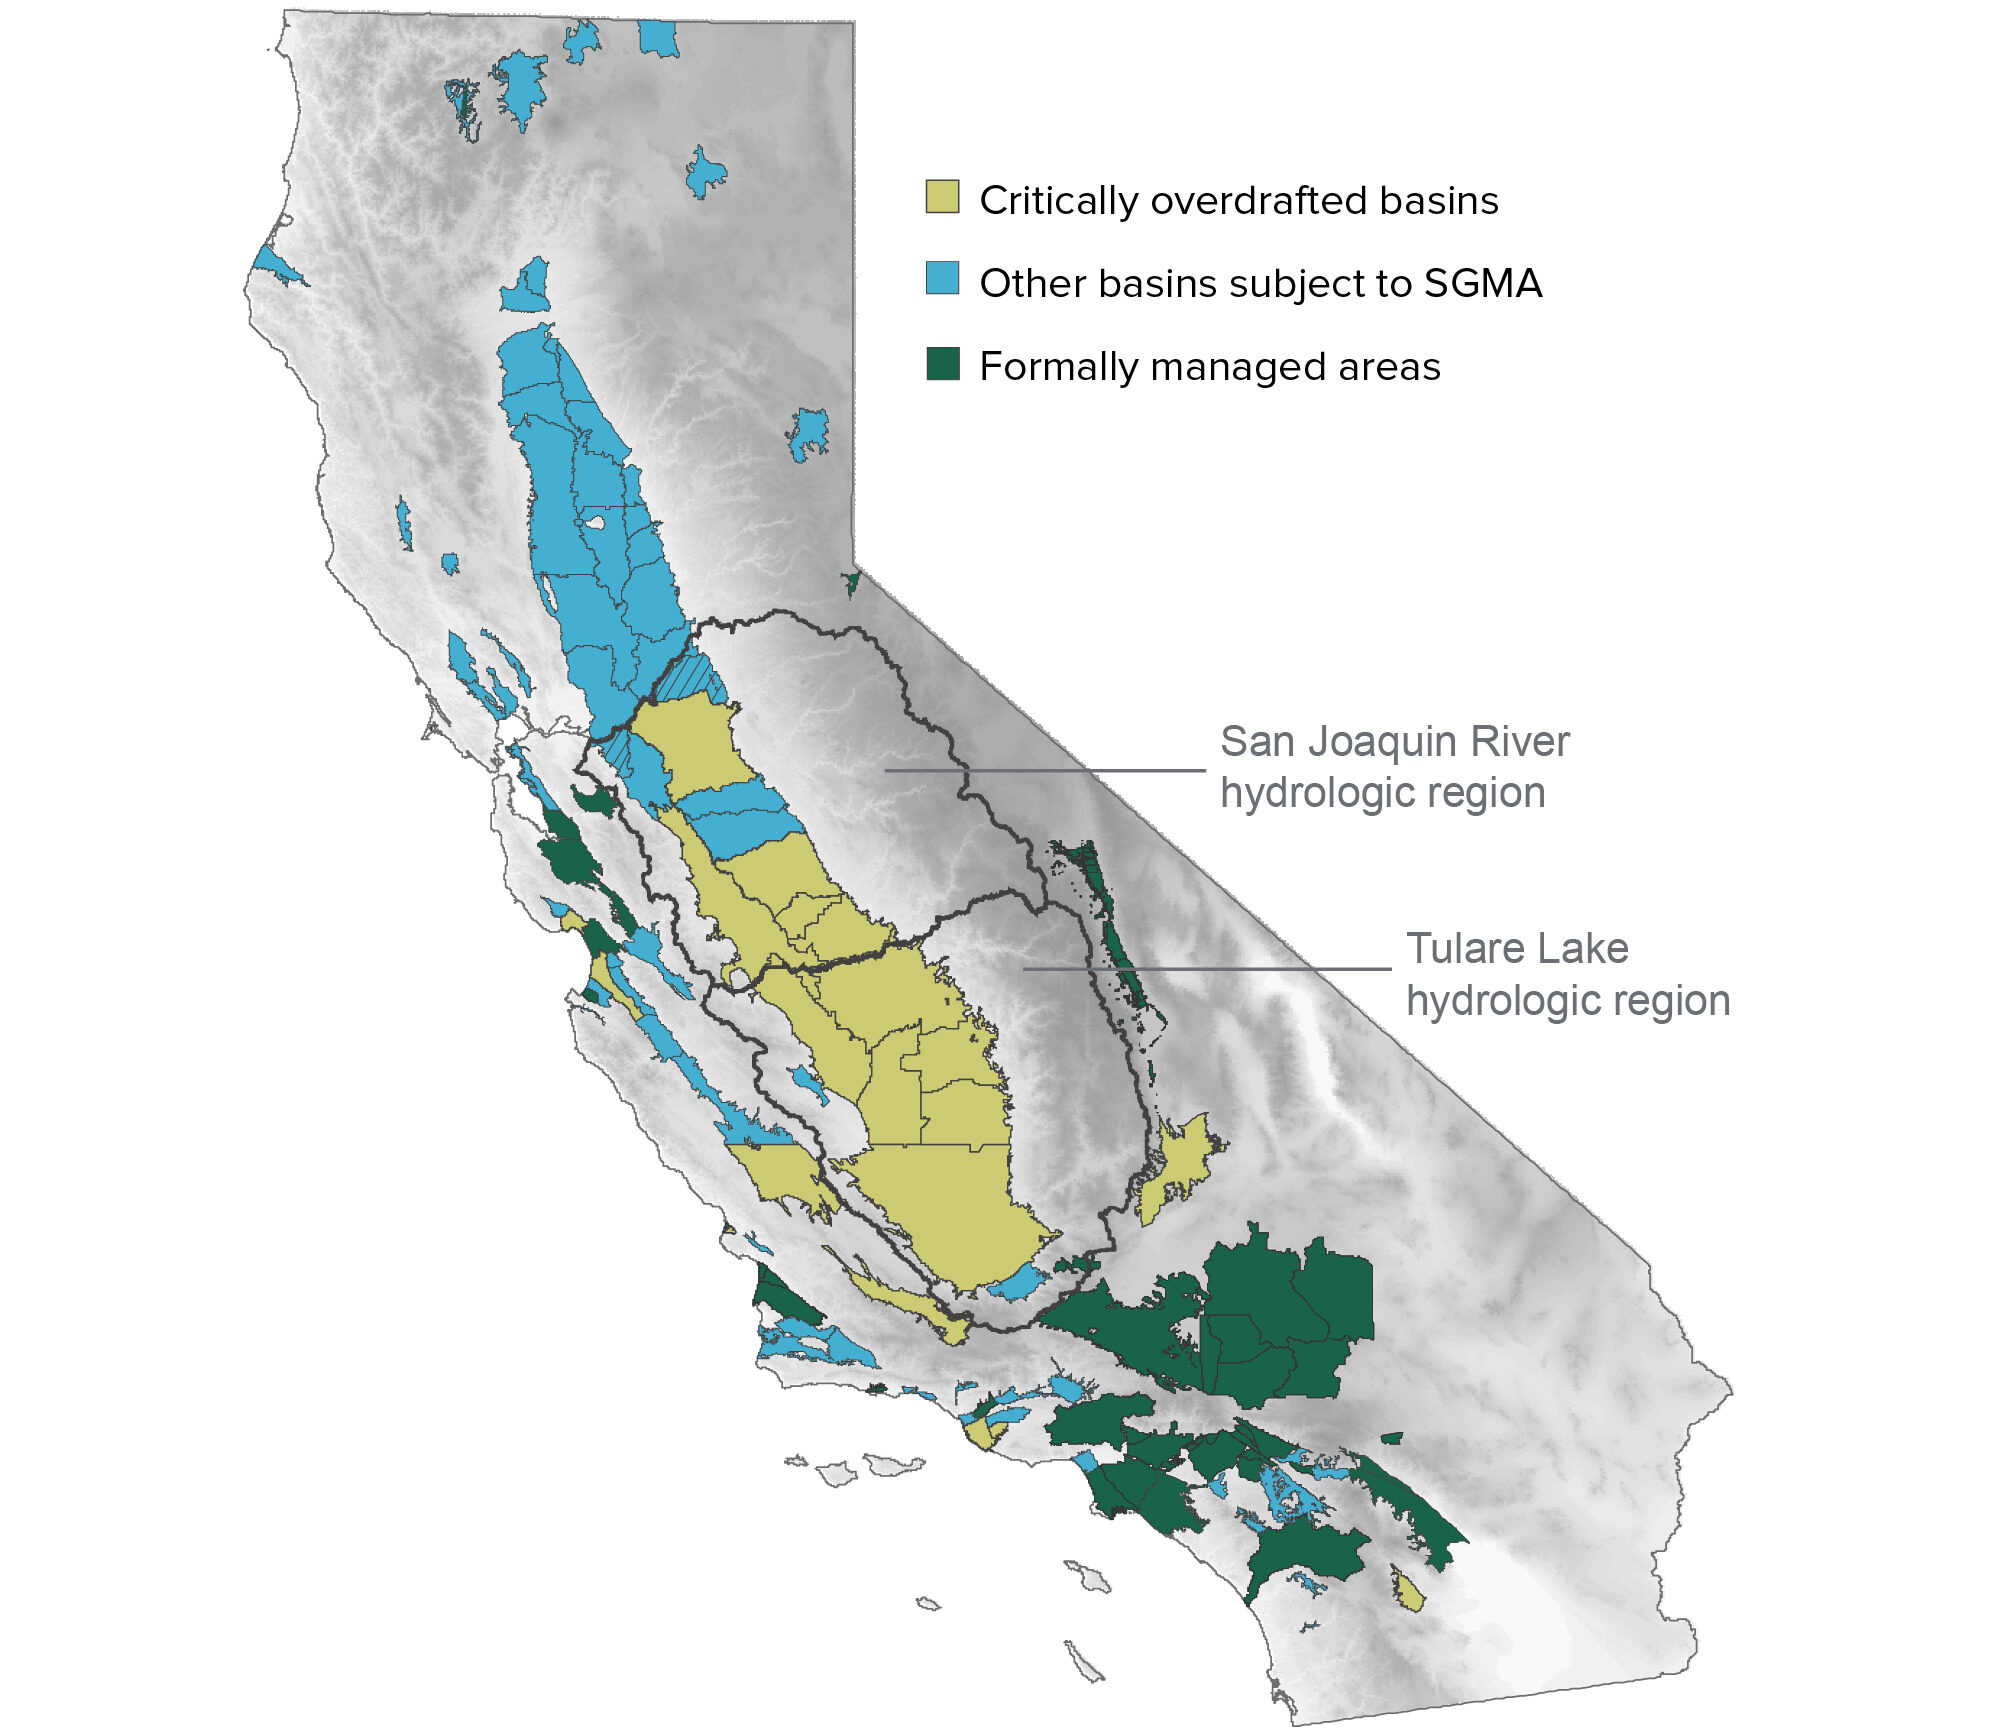 figure - The valley is home to most of the states critically overdrafted basins